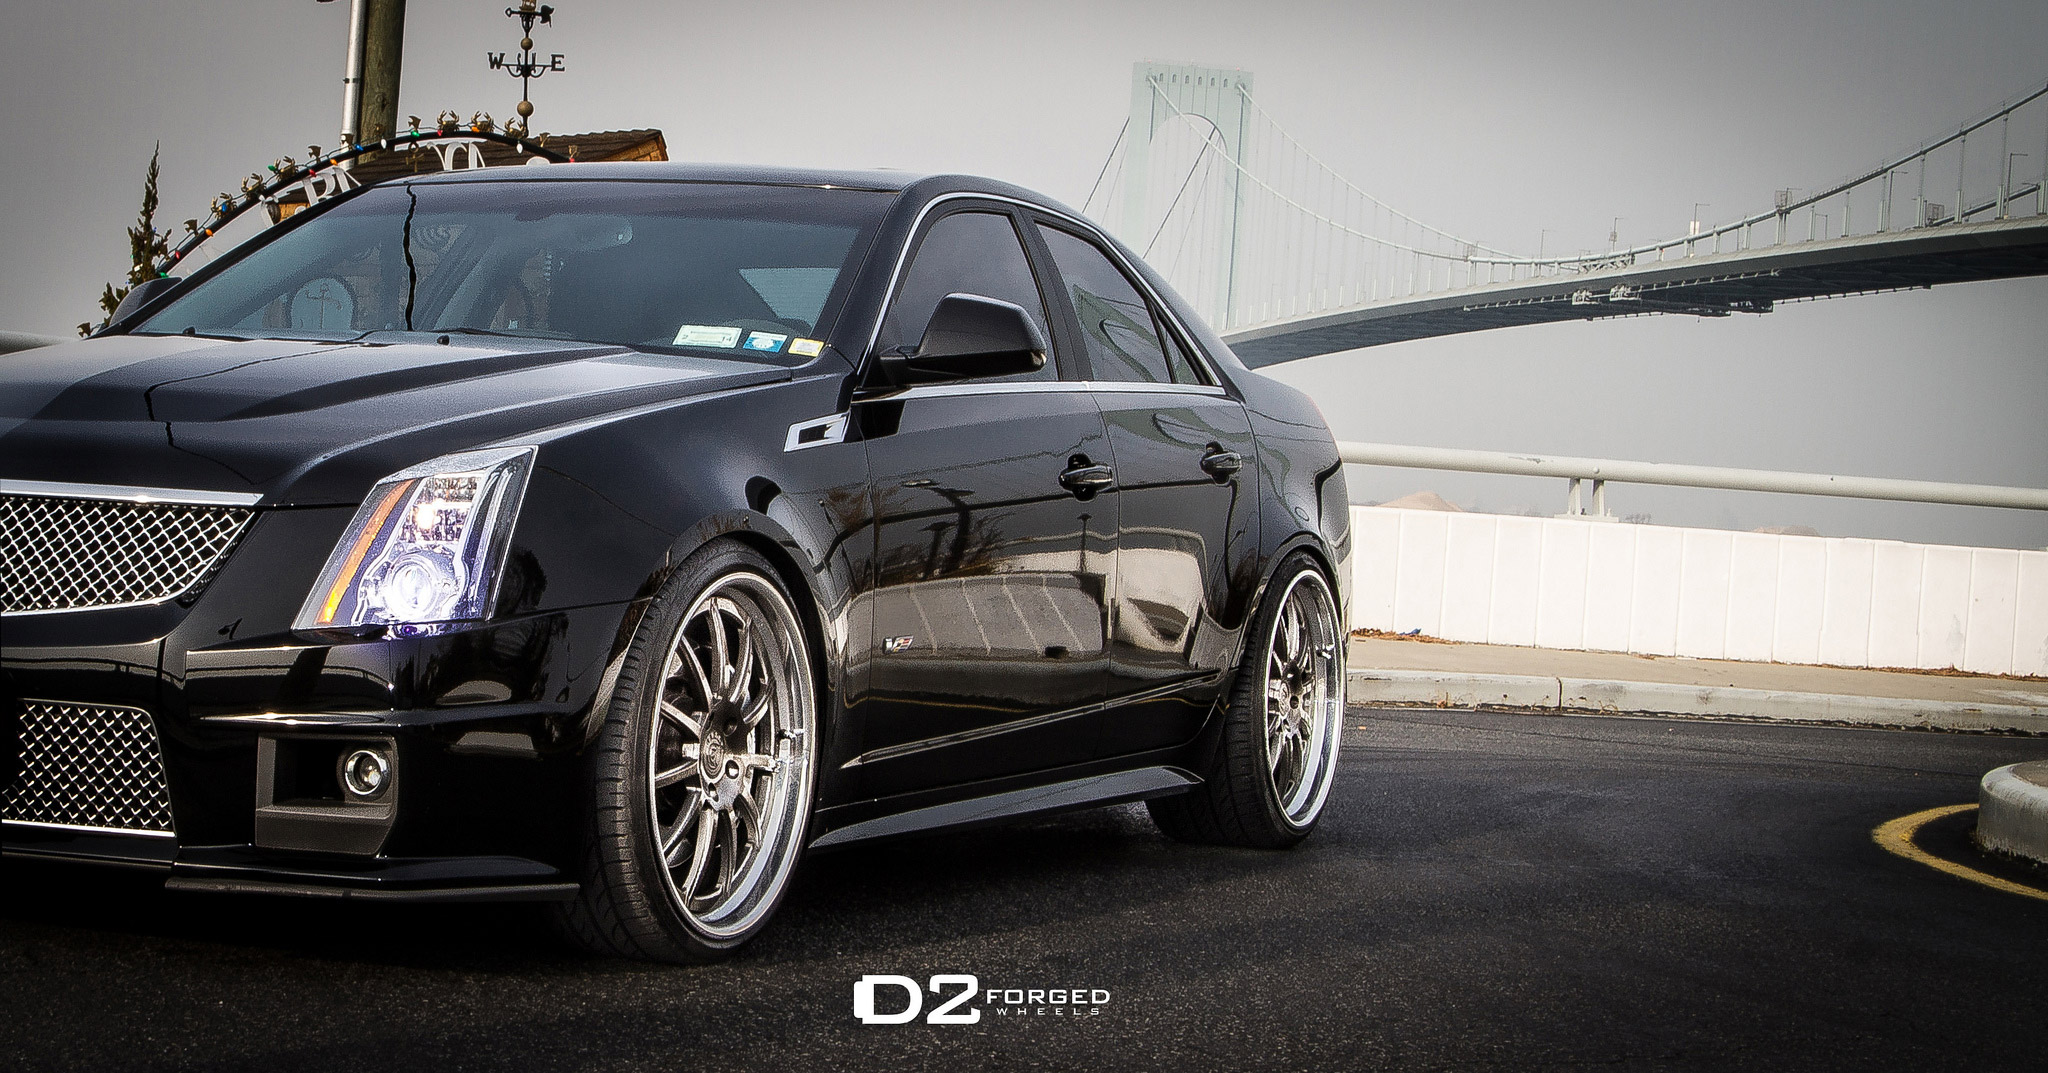 D2forged Cadillac Cts V Fms 11 Picture 78903